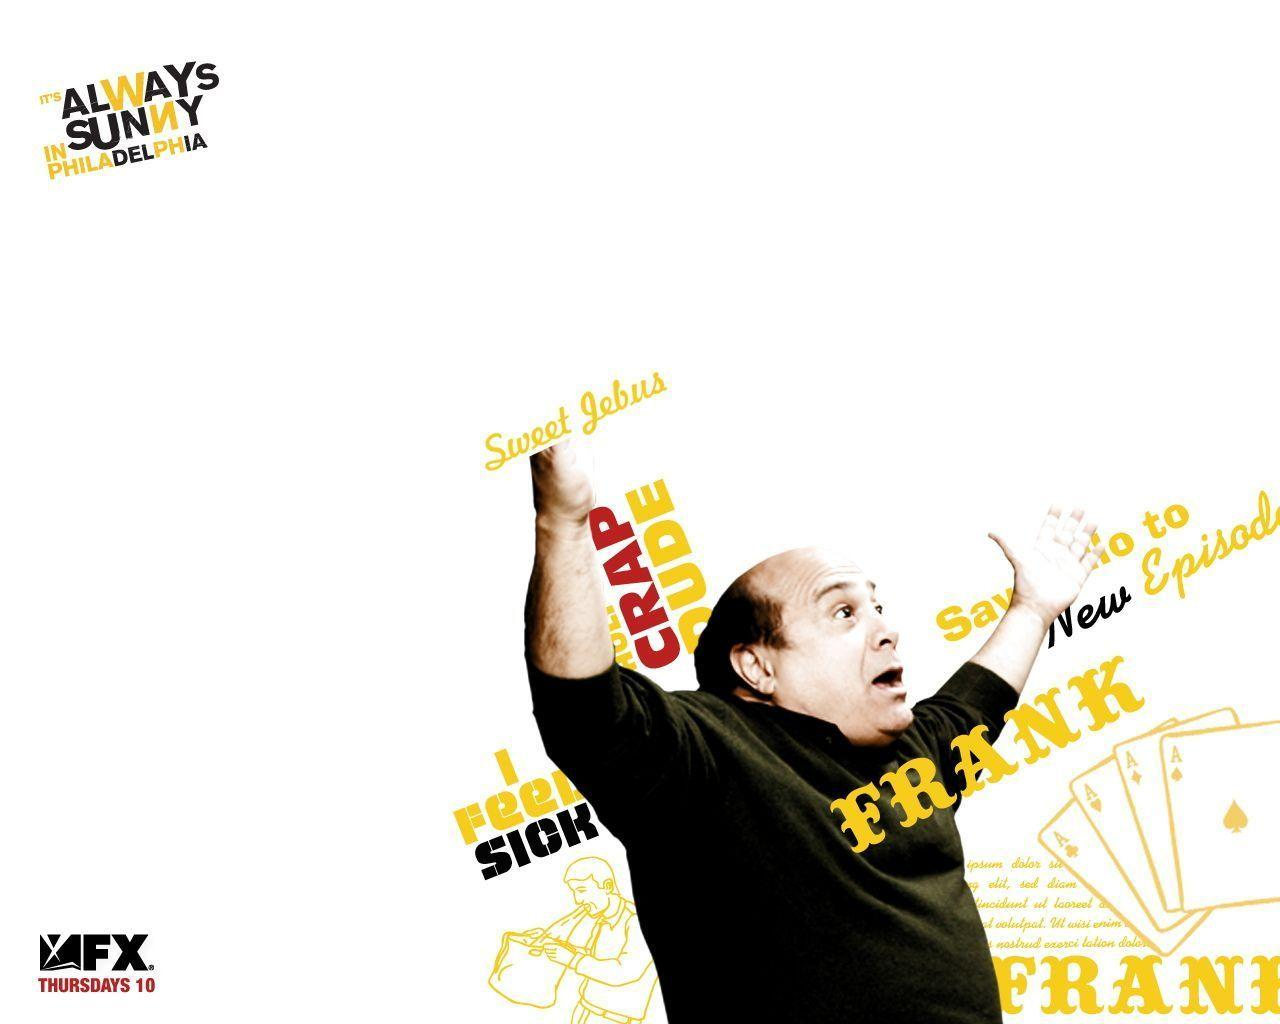 Always Sunny Wallpapers - Wallpaper Cave